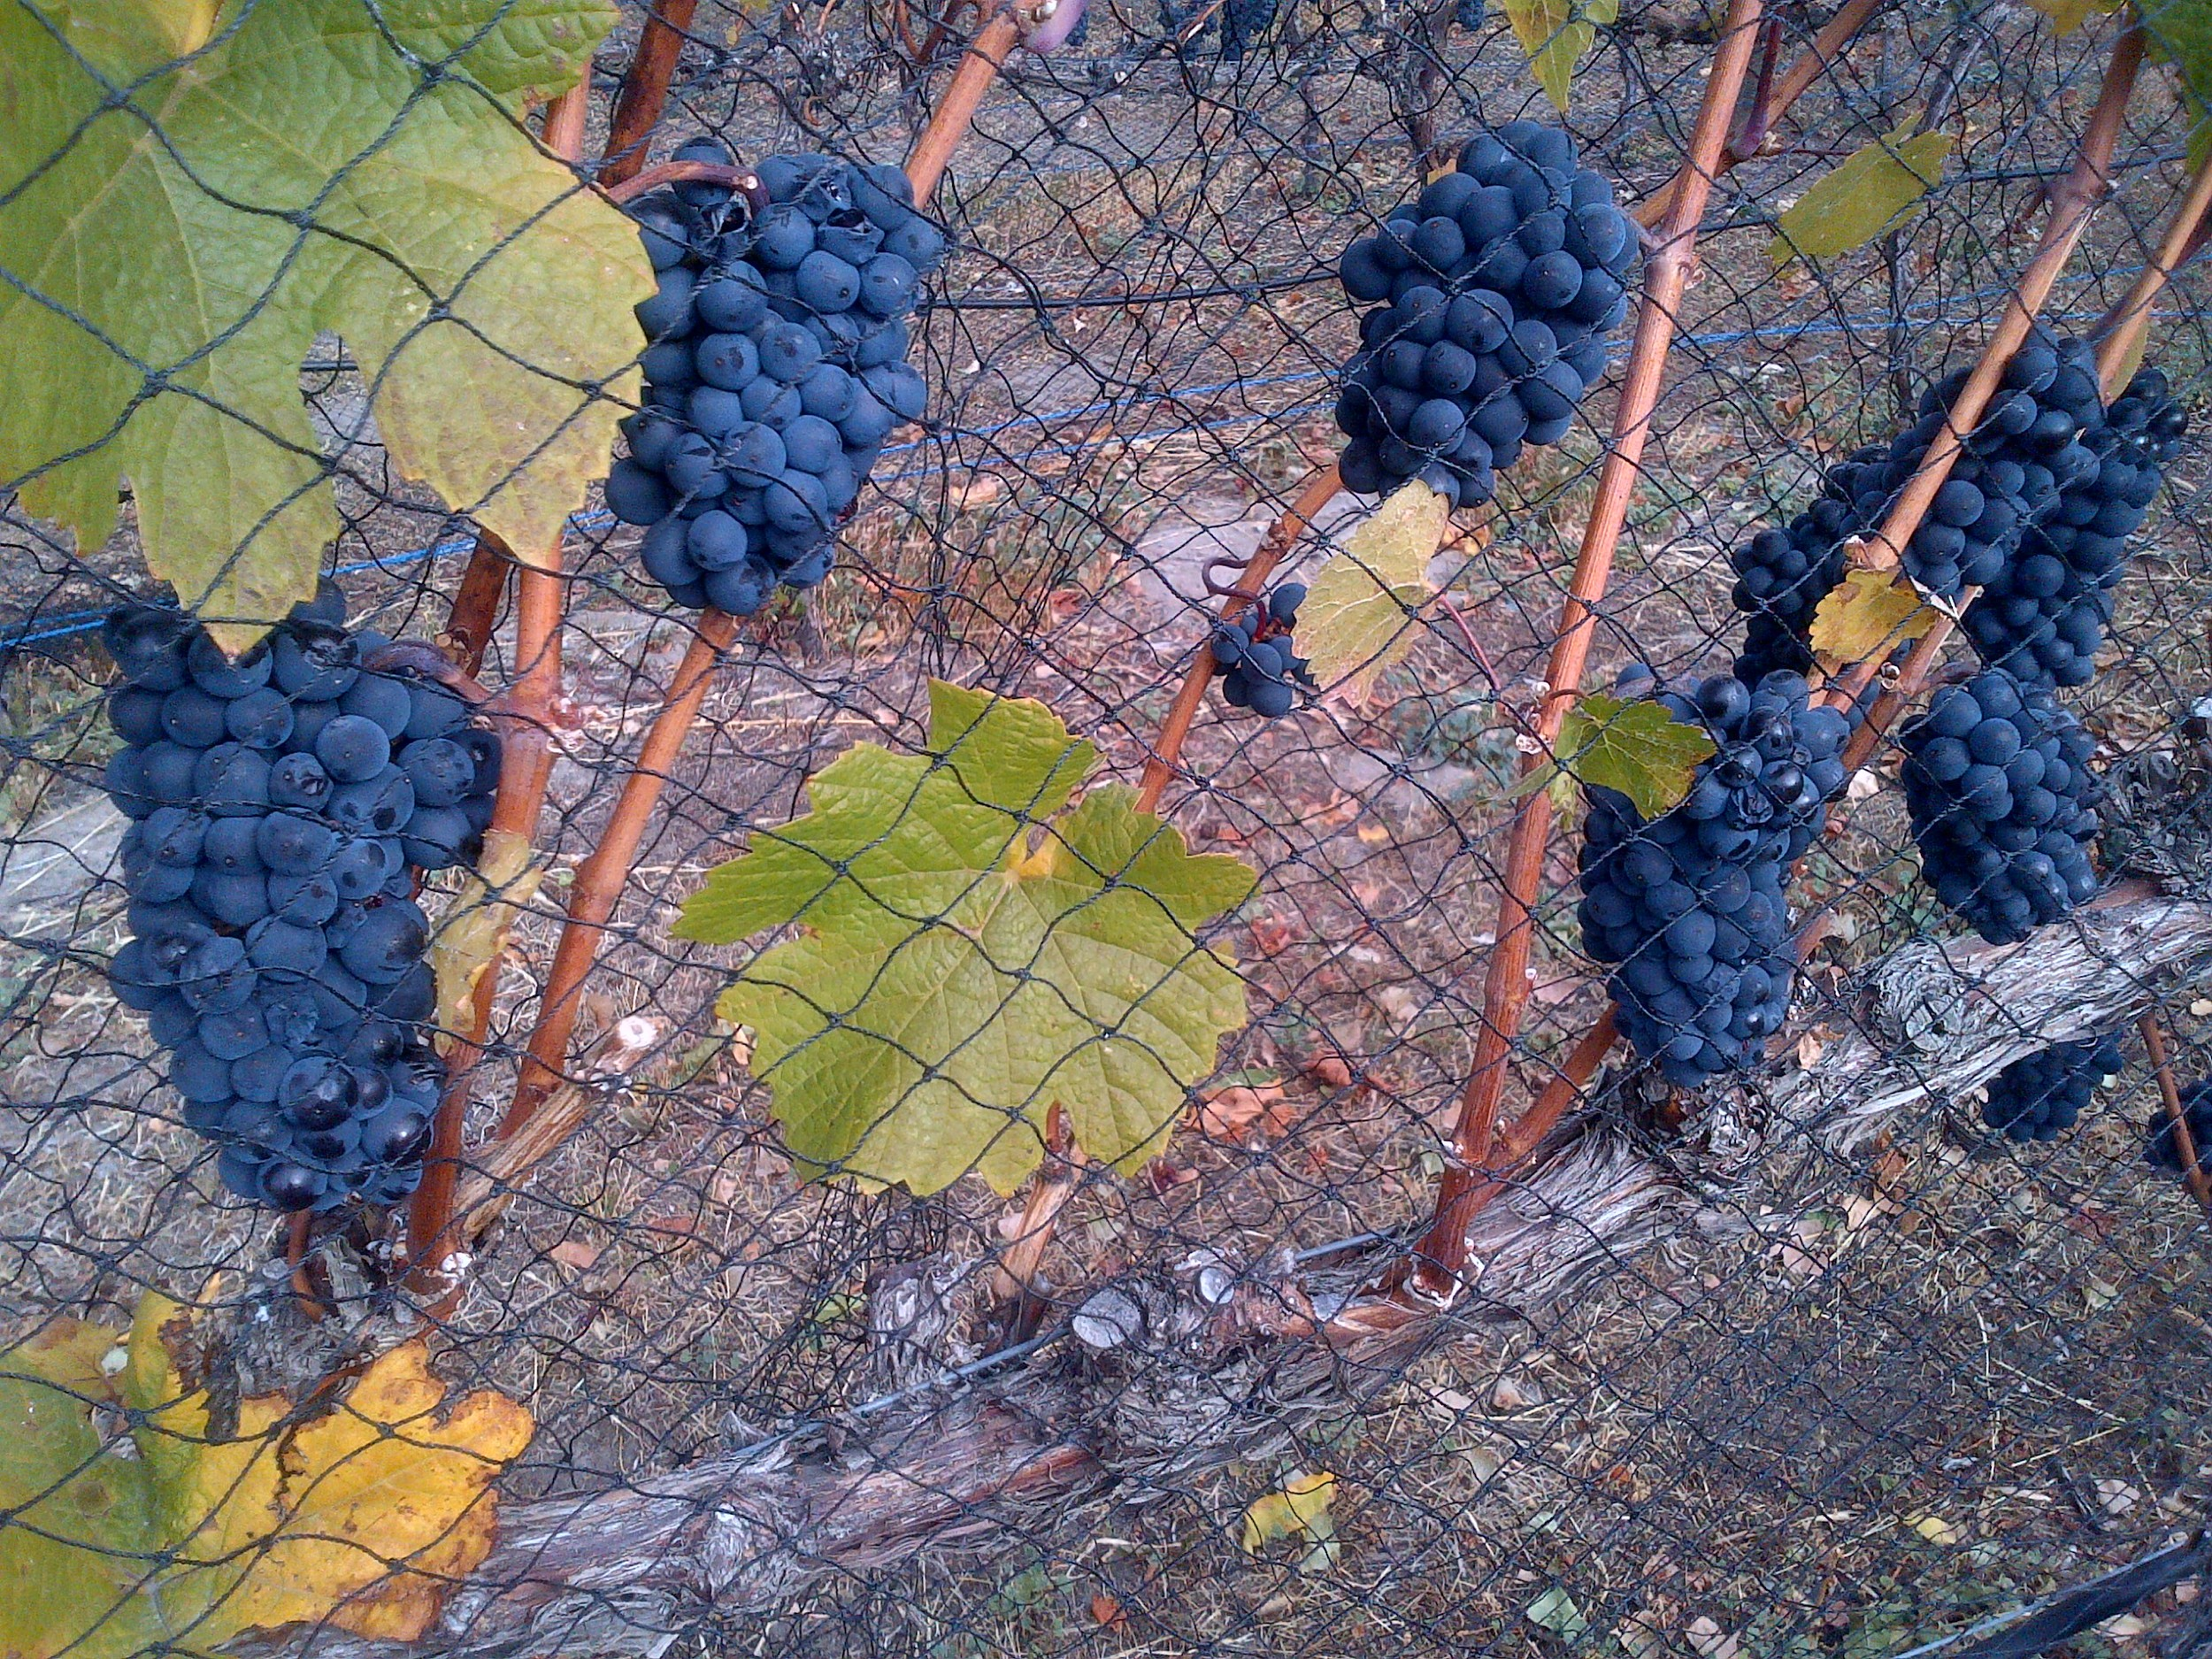 Beautiful Pinot Noir about ready for harvesting